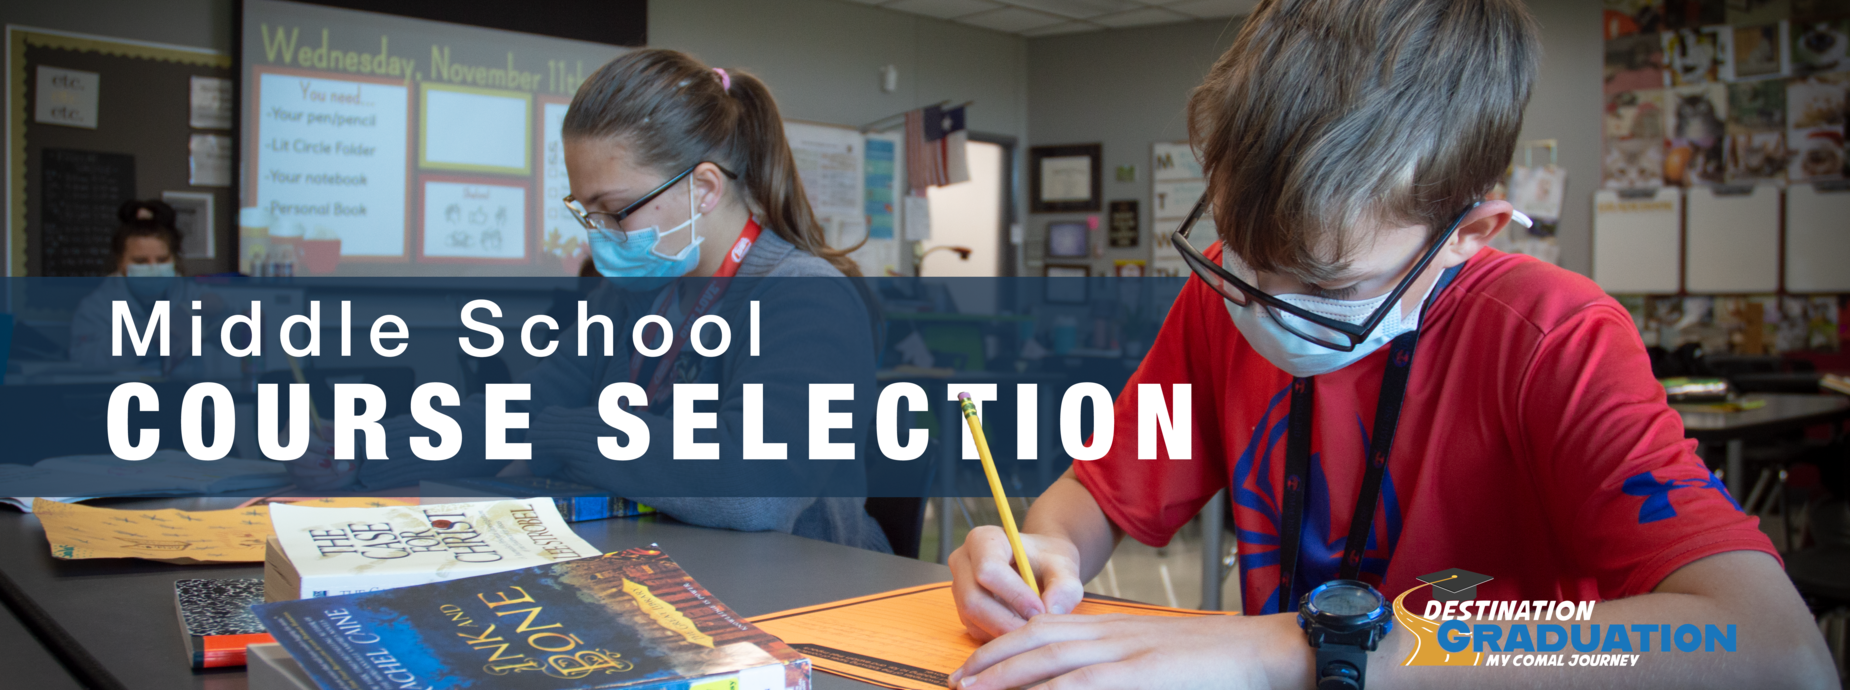 Middle School Course Selection Banner